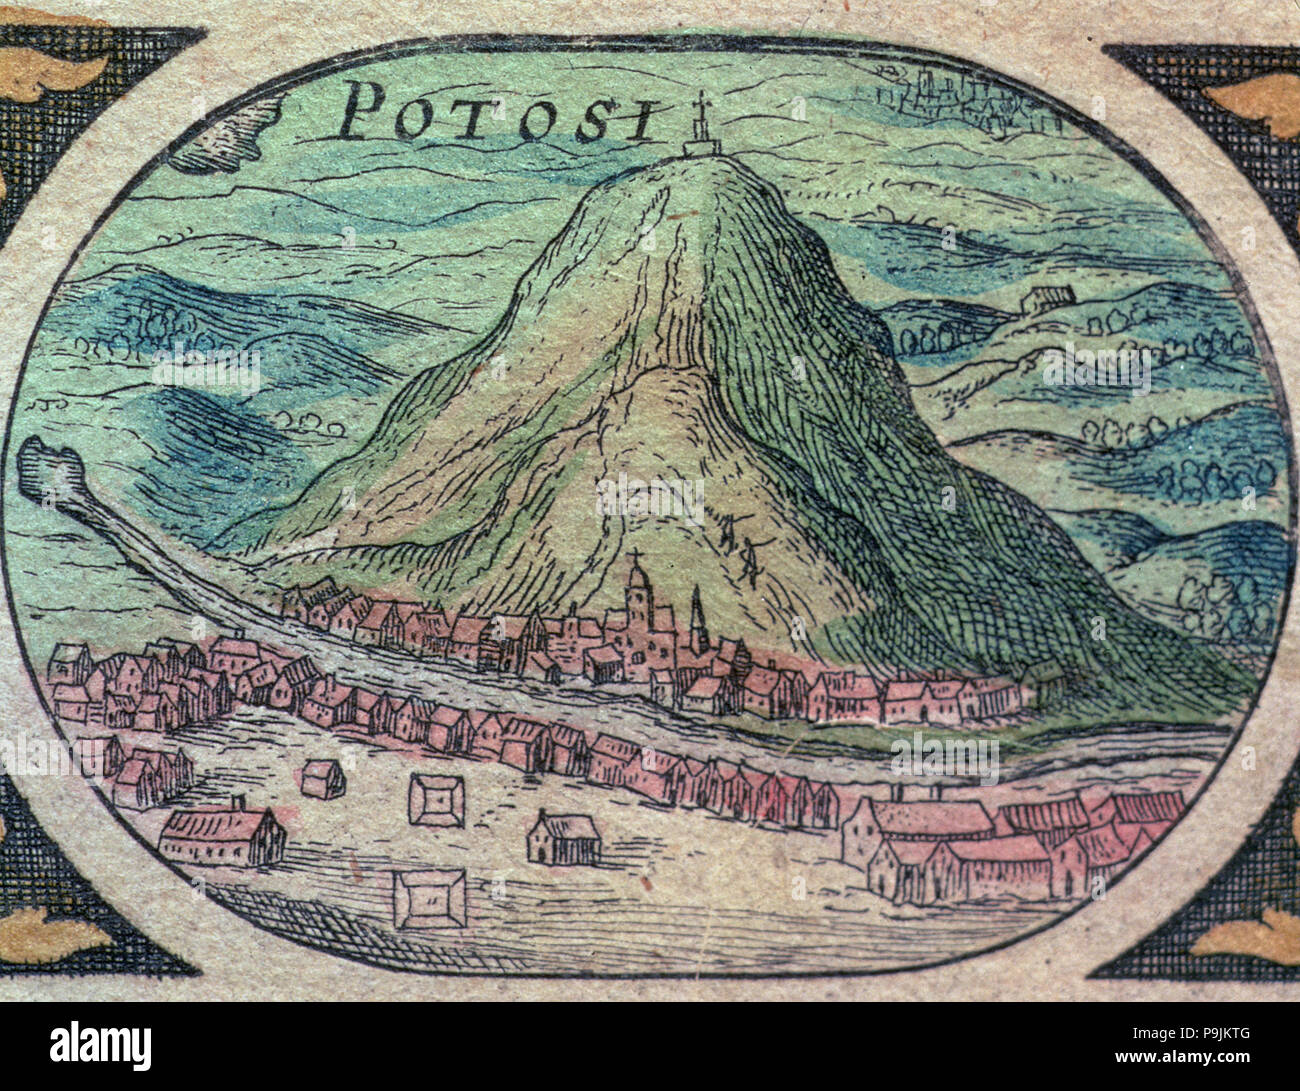 View of the city of Potosí with its famous hill, engraving in 'Nouvel Atlas', 1643. - Stock Image